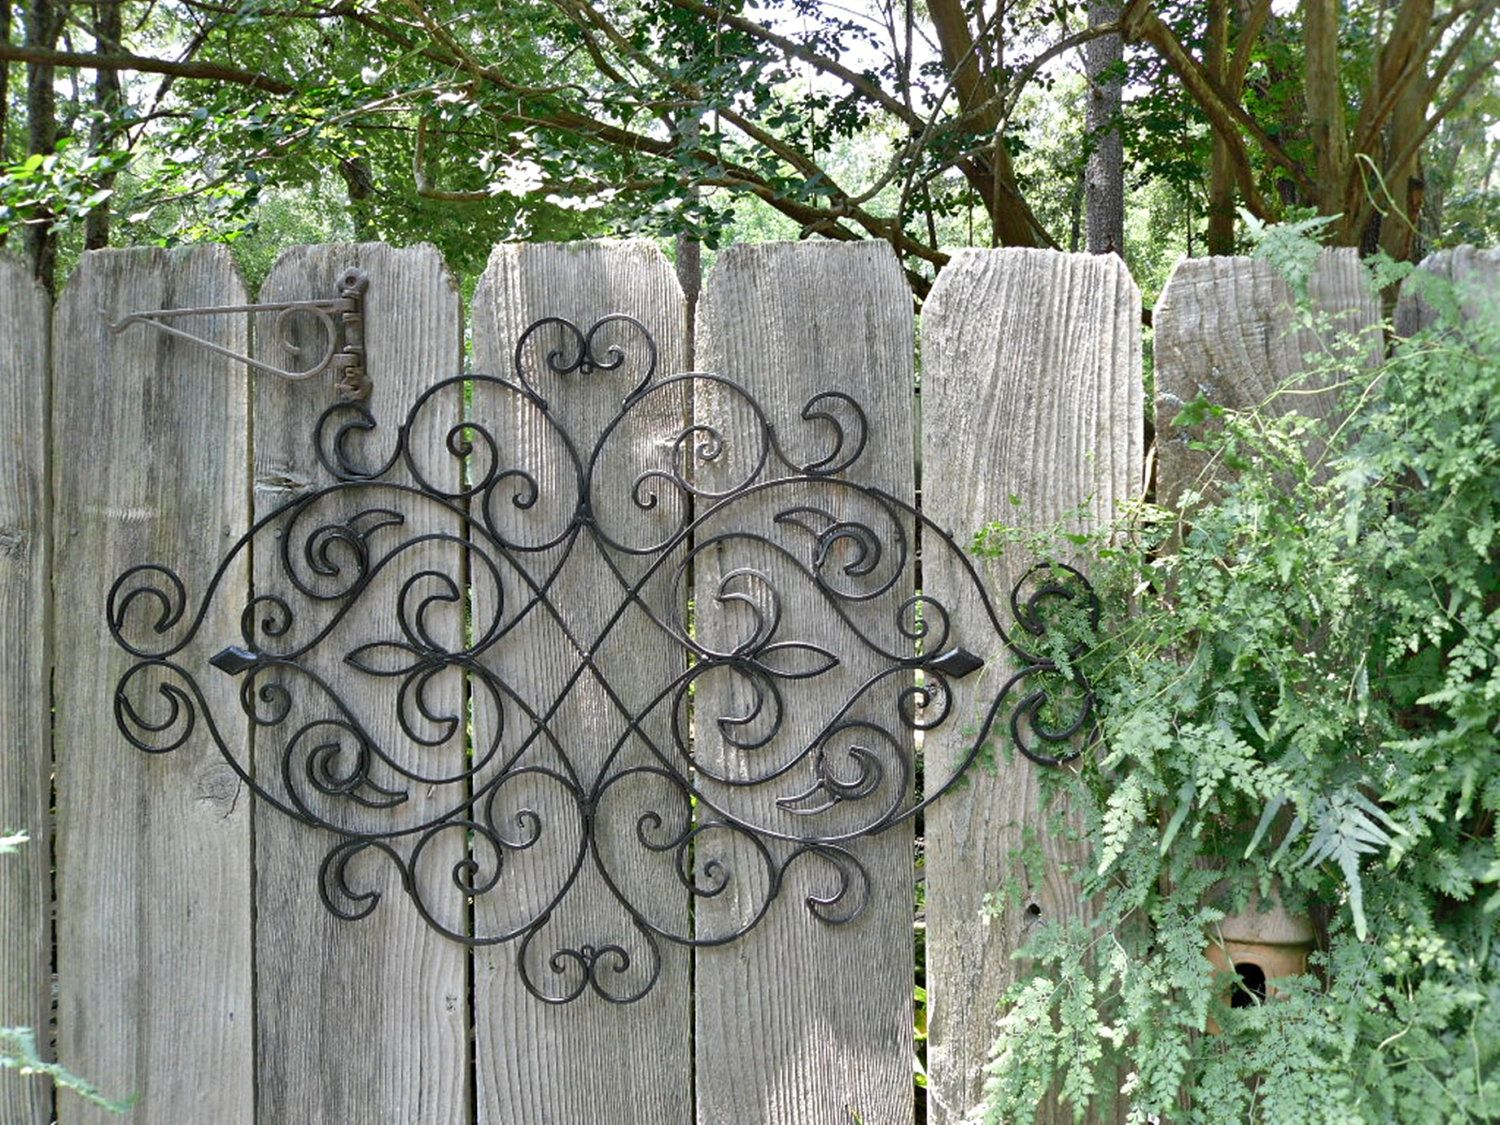 Wrought Iron Wall Decor / Black Wall Decor/ Fleur De Lis / Headboard / Wrought  Iron Headboard/ Shabby Chic Decor - Wrought Iron Wall Decor / Black Wall Decor/ Fleur De Lis